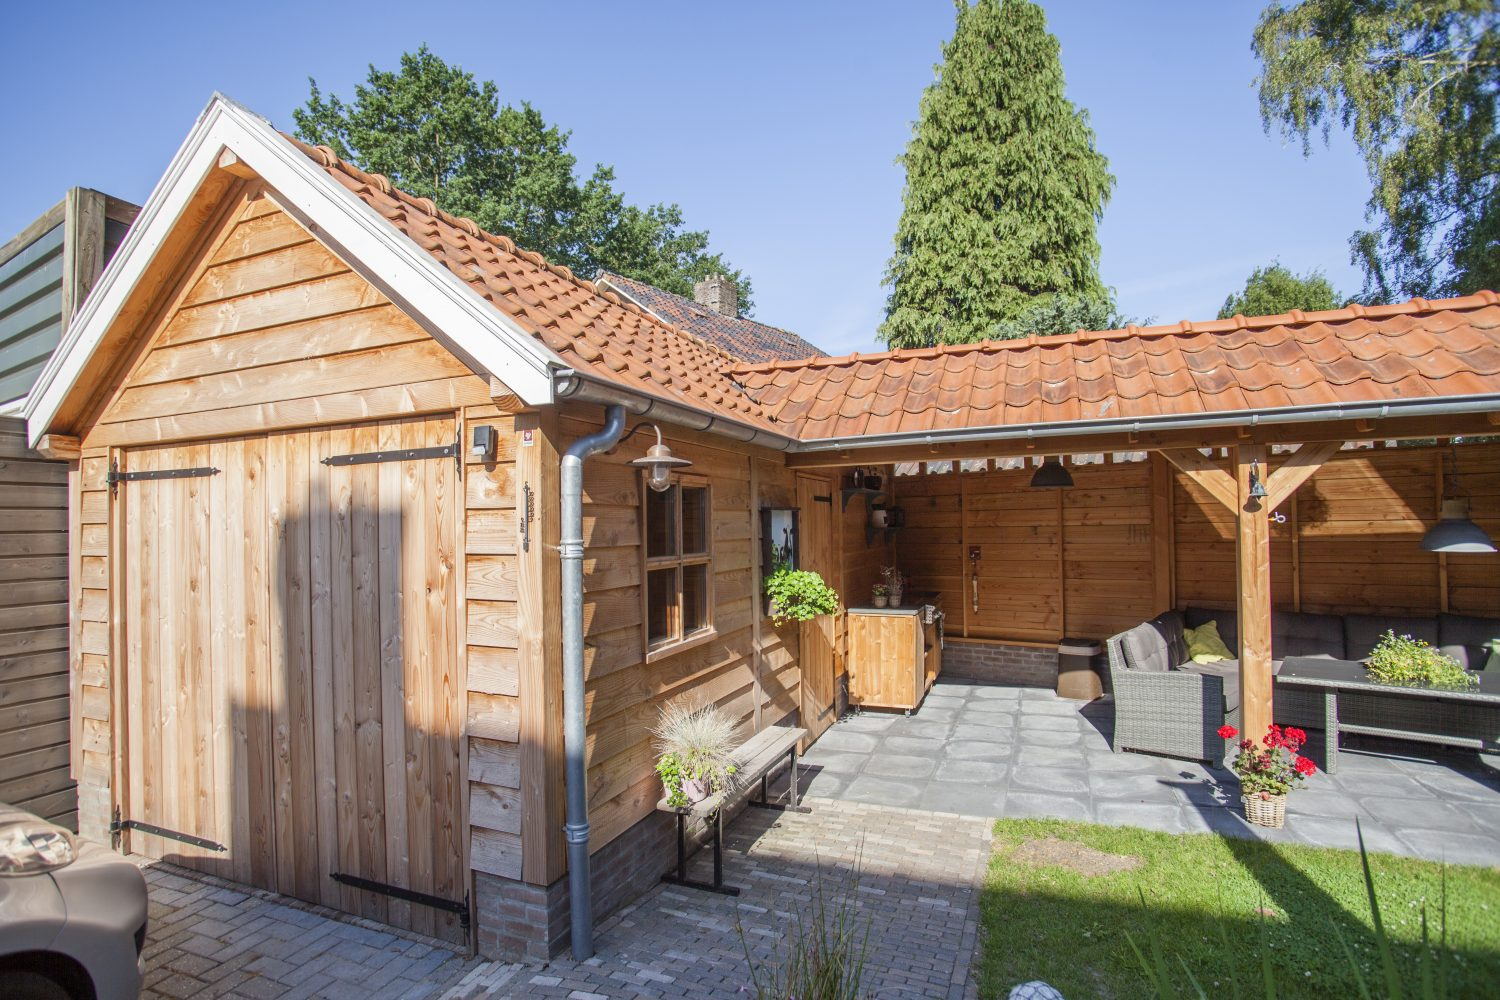 Garage Met Overkapping : Garages schuren vdbent wood creations